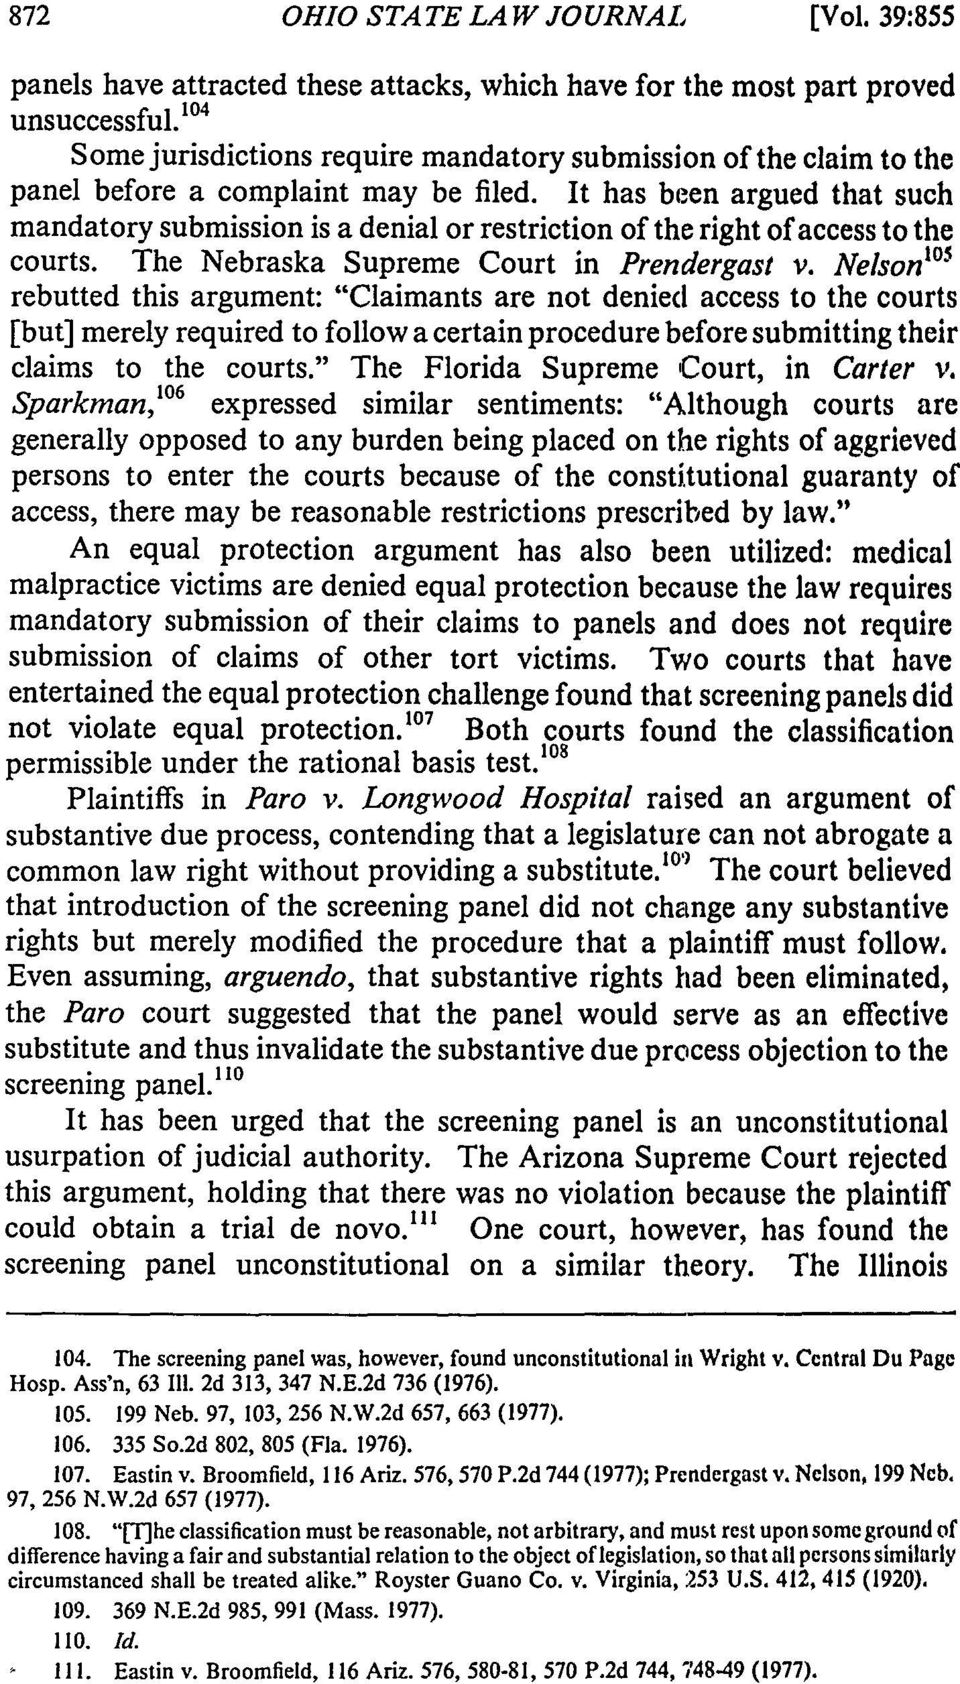 It has been argued that such mandatory submission is a denial or restriction of the right of access to the courts. The Nebraska Supreme Court in Prendergast v.